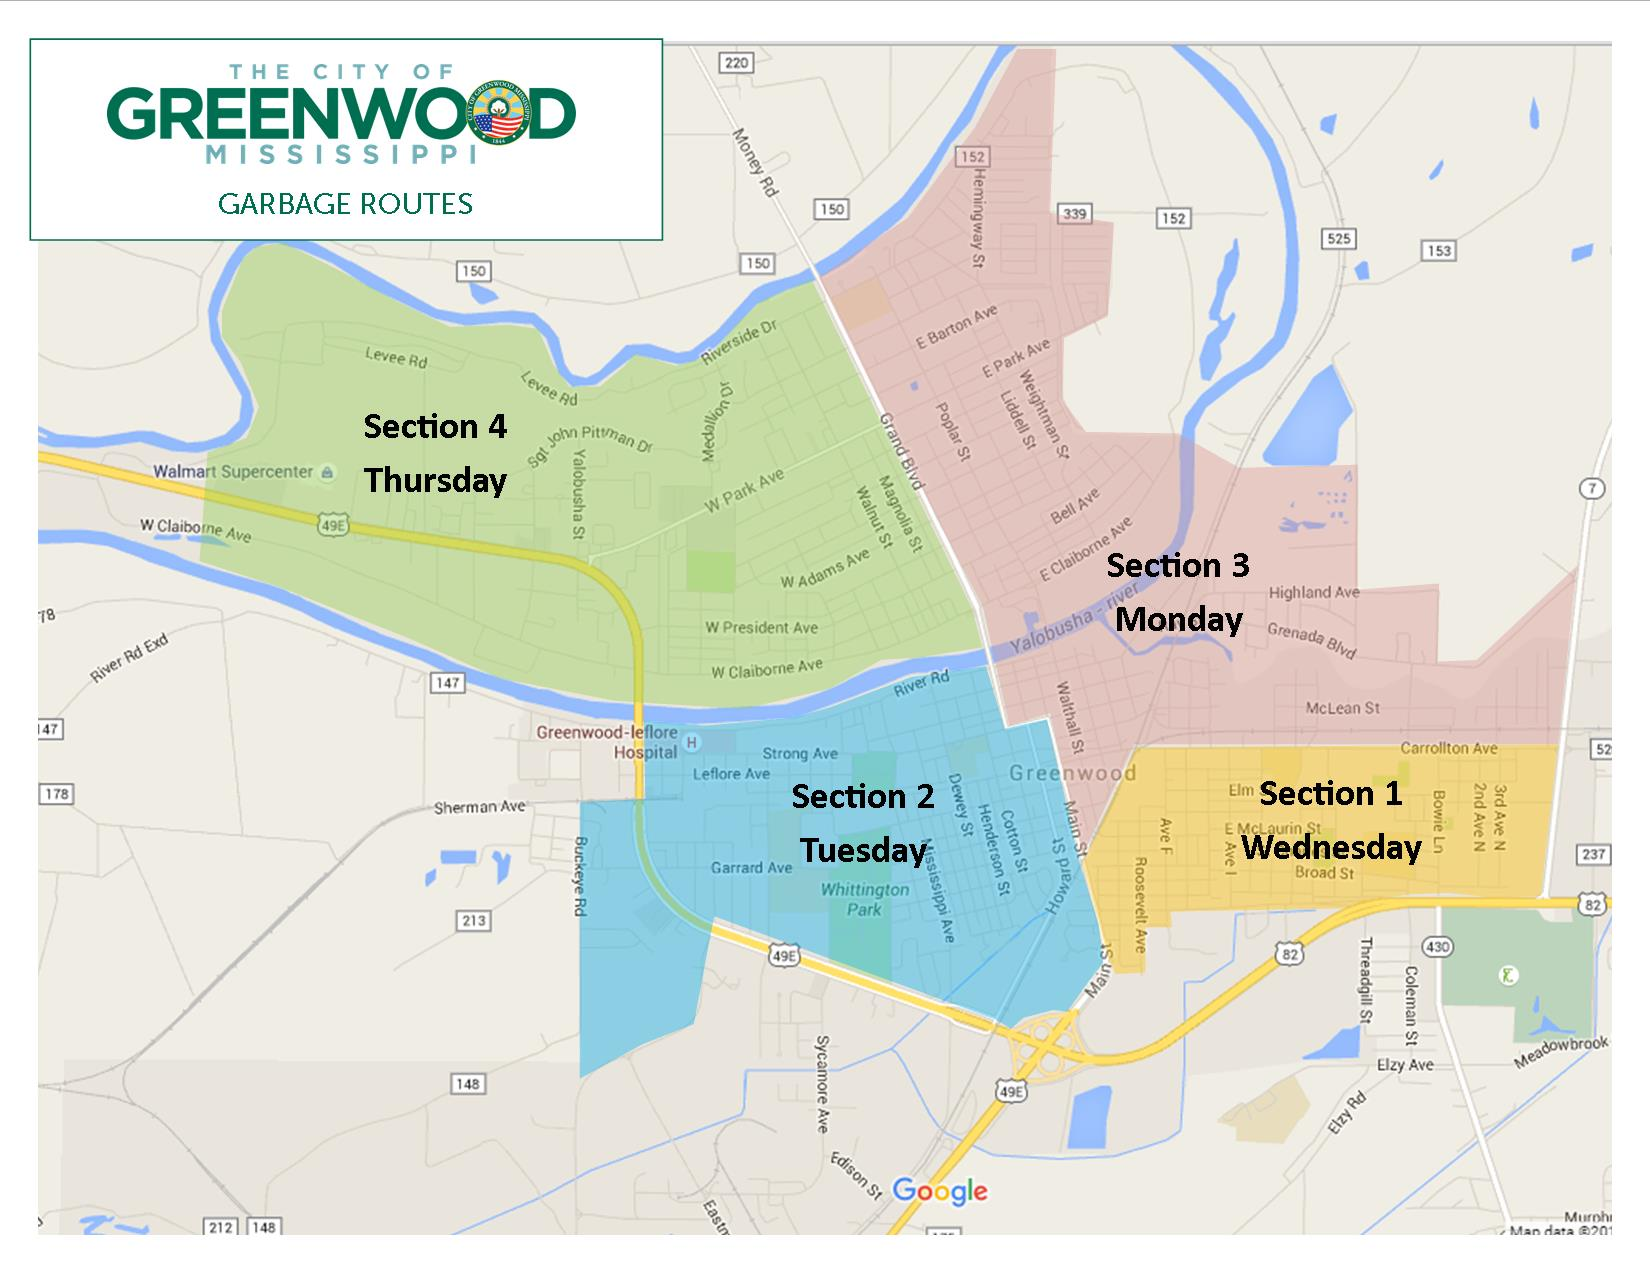 City of Greenwood, Mississippi | Garbage and Trash